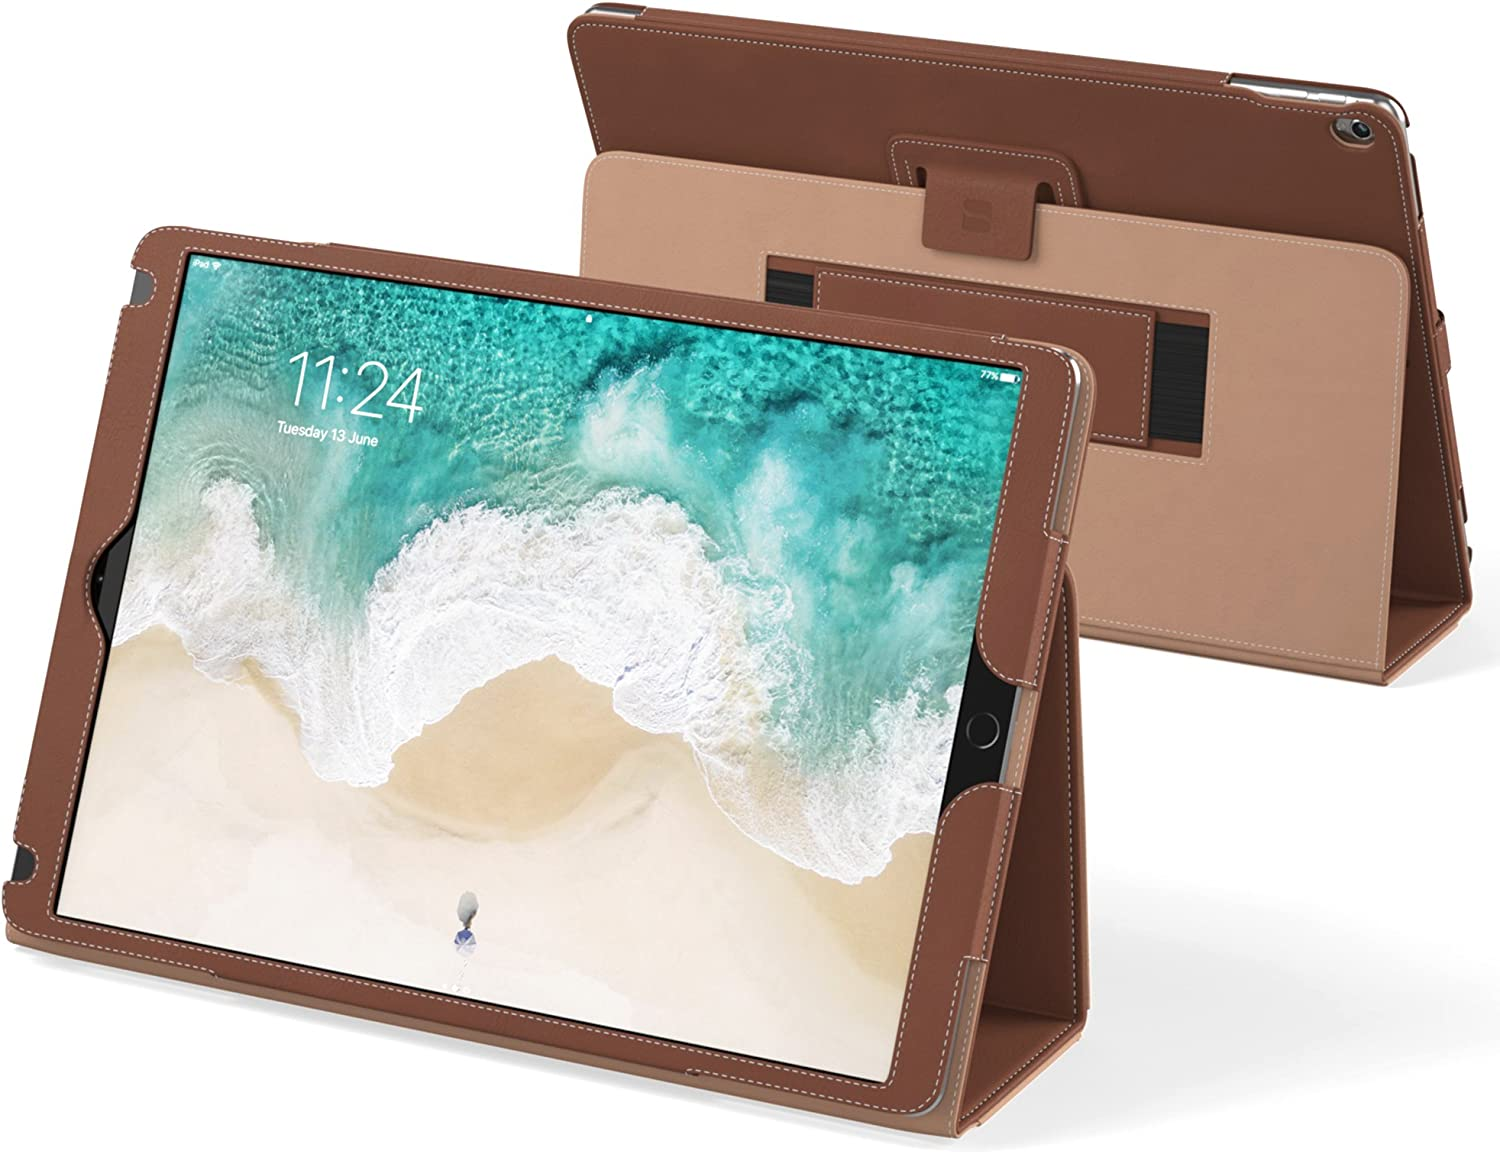 "Snugg iPad Air 3 (2019) / iPad 10.2"" (8th & 7th Gen) / iPad Pro 10.5"" Leather Case, Flip Stand Protective Cover - Distressed Brown"